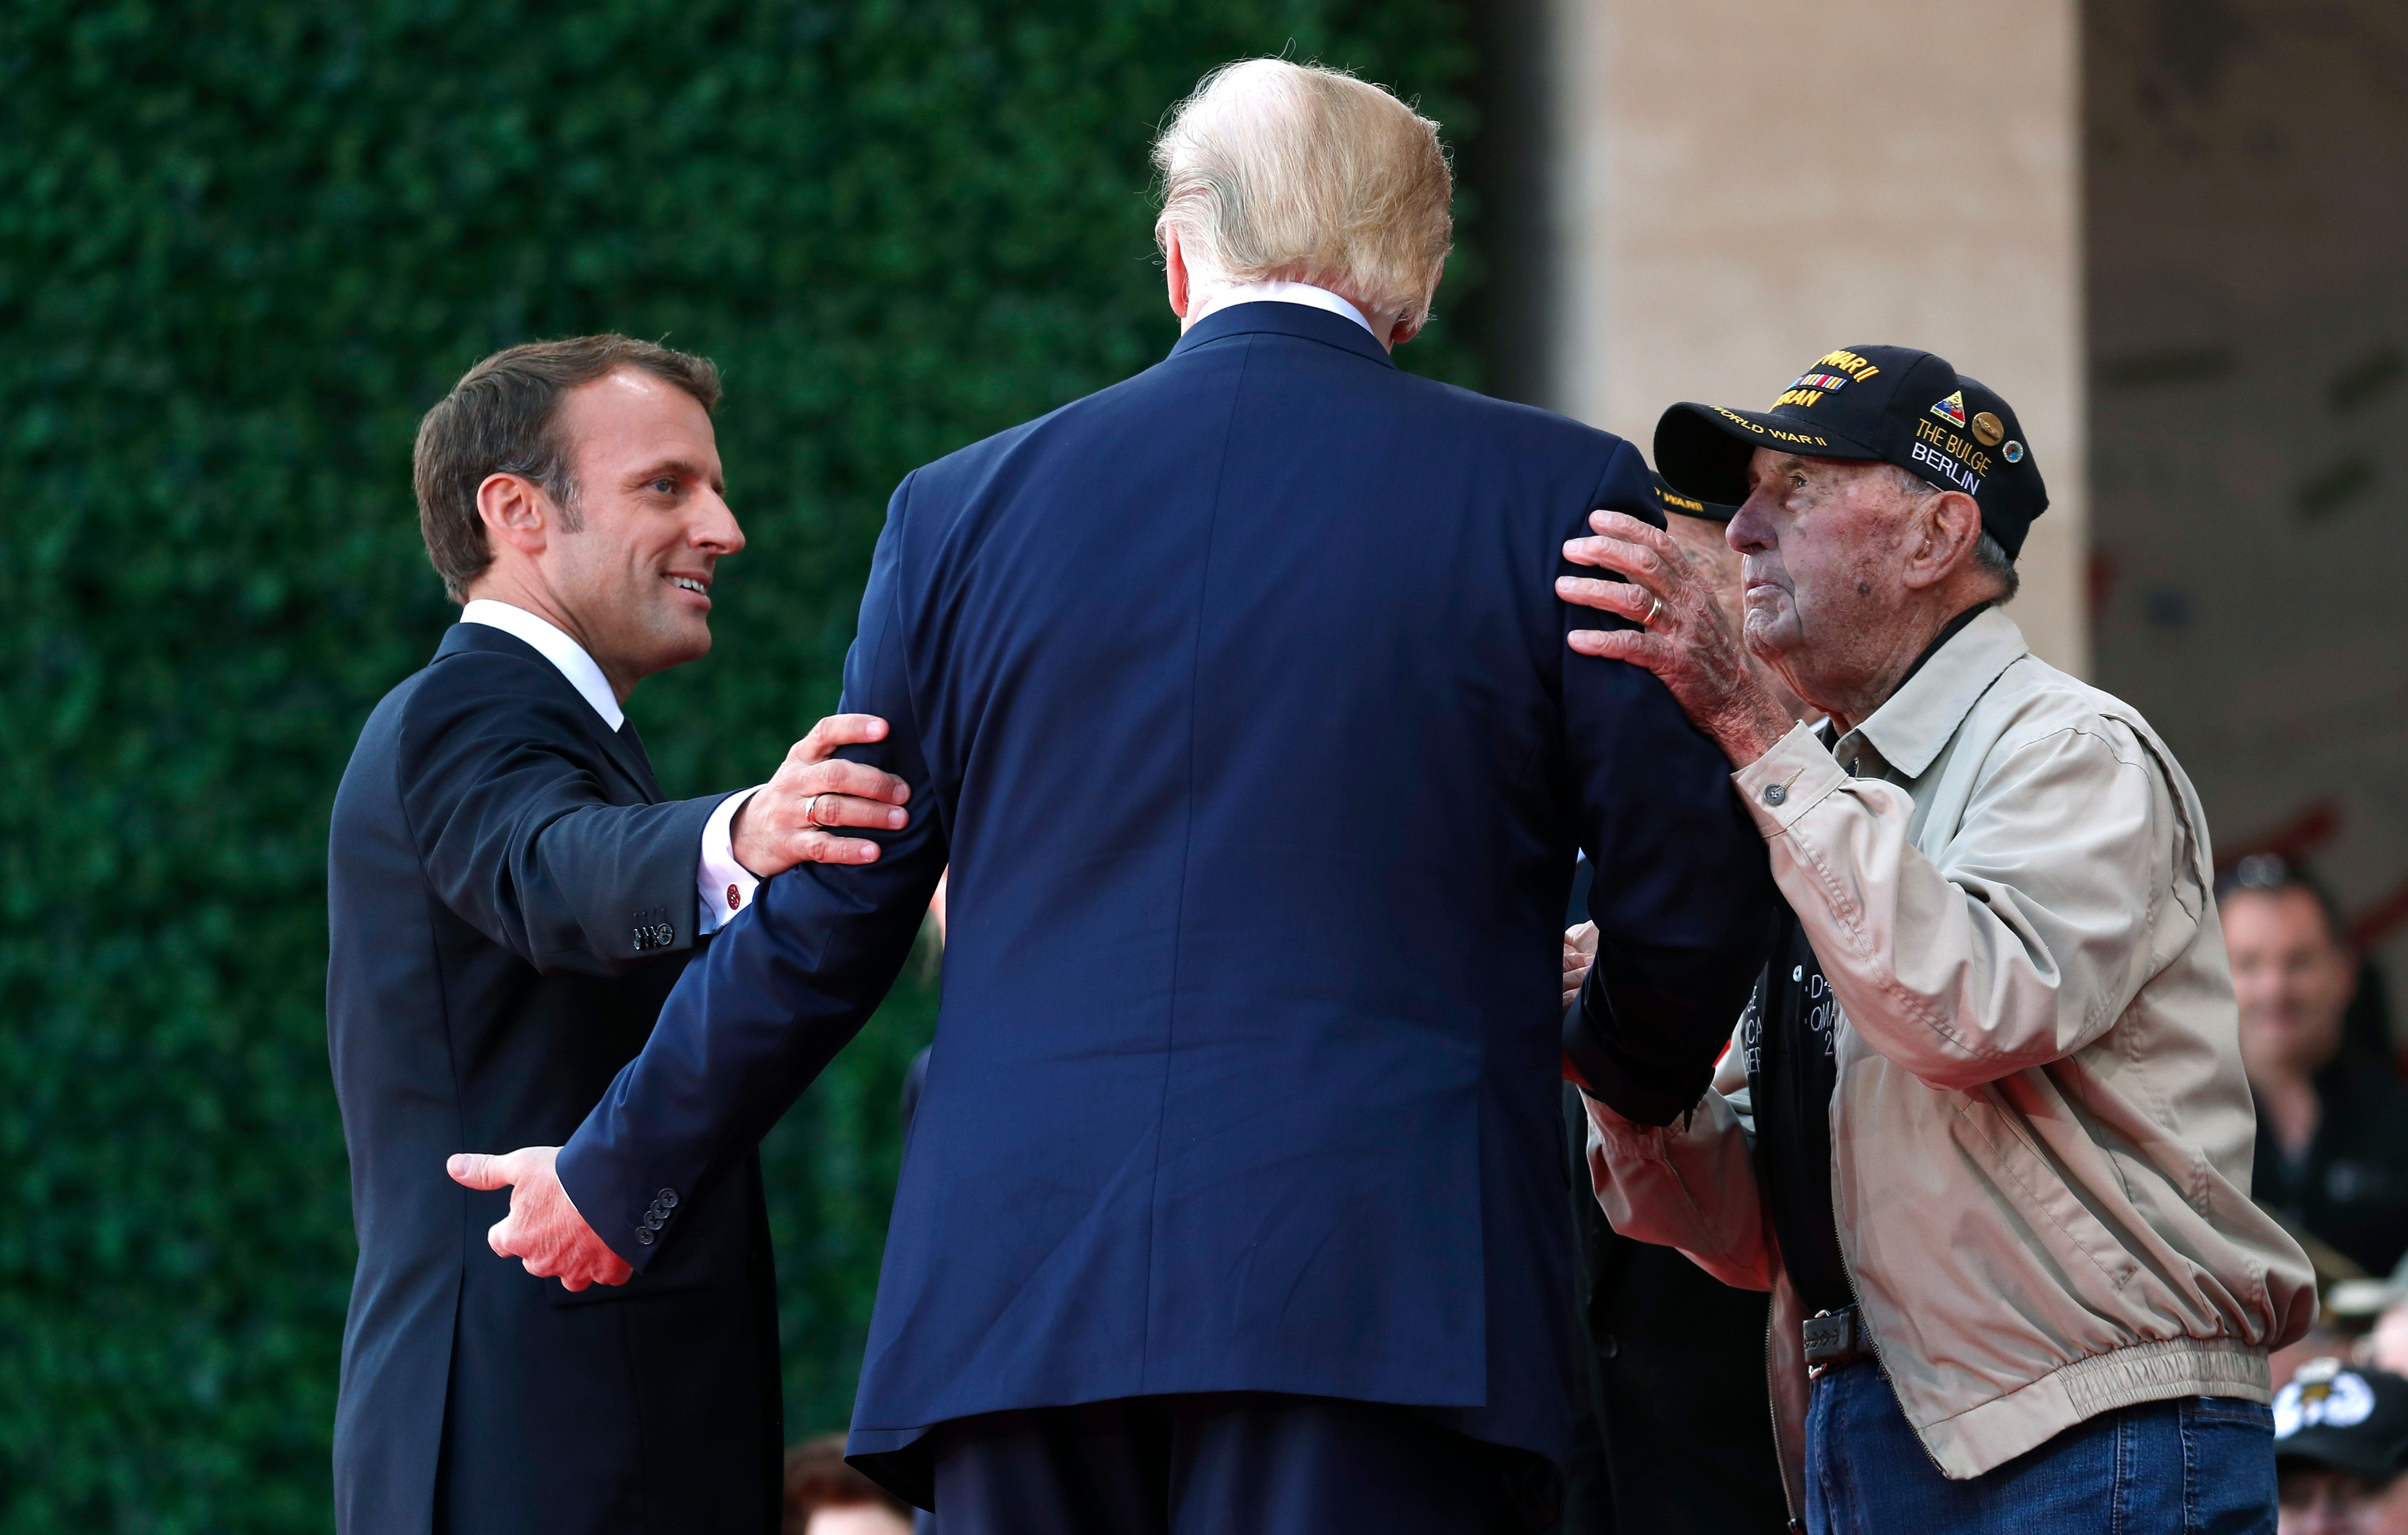 Macron and Trump greet a veteran.